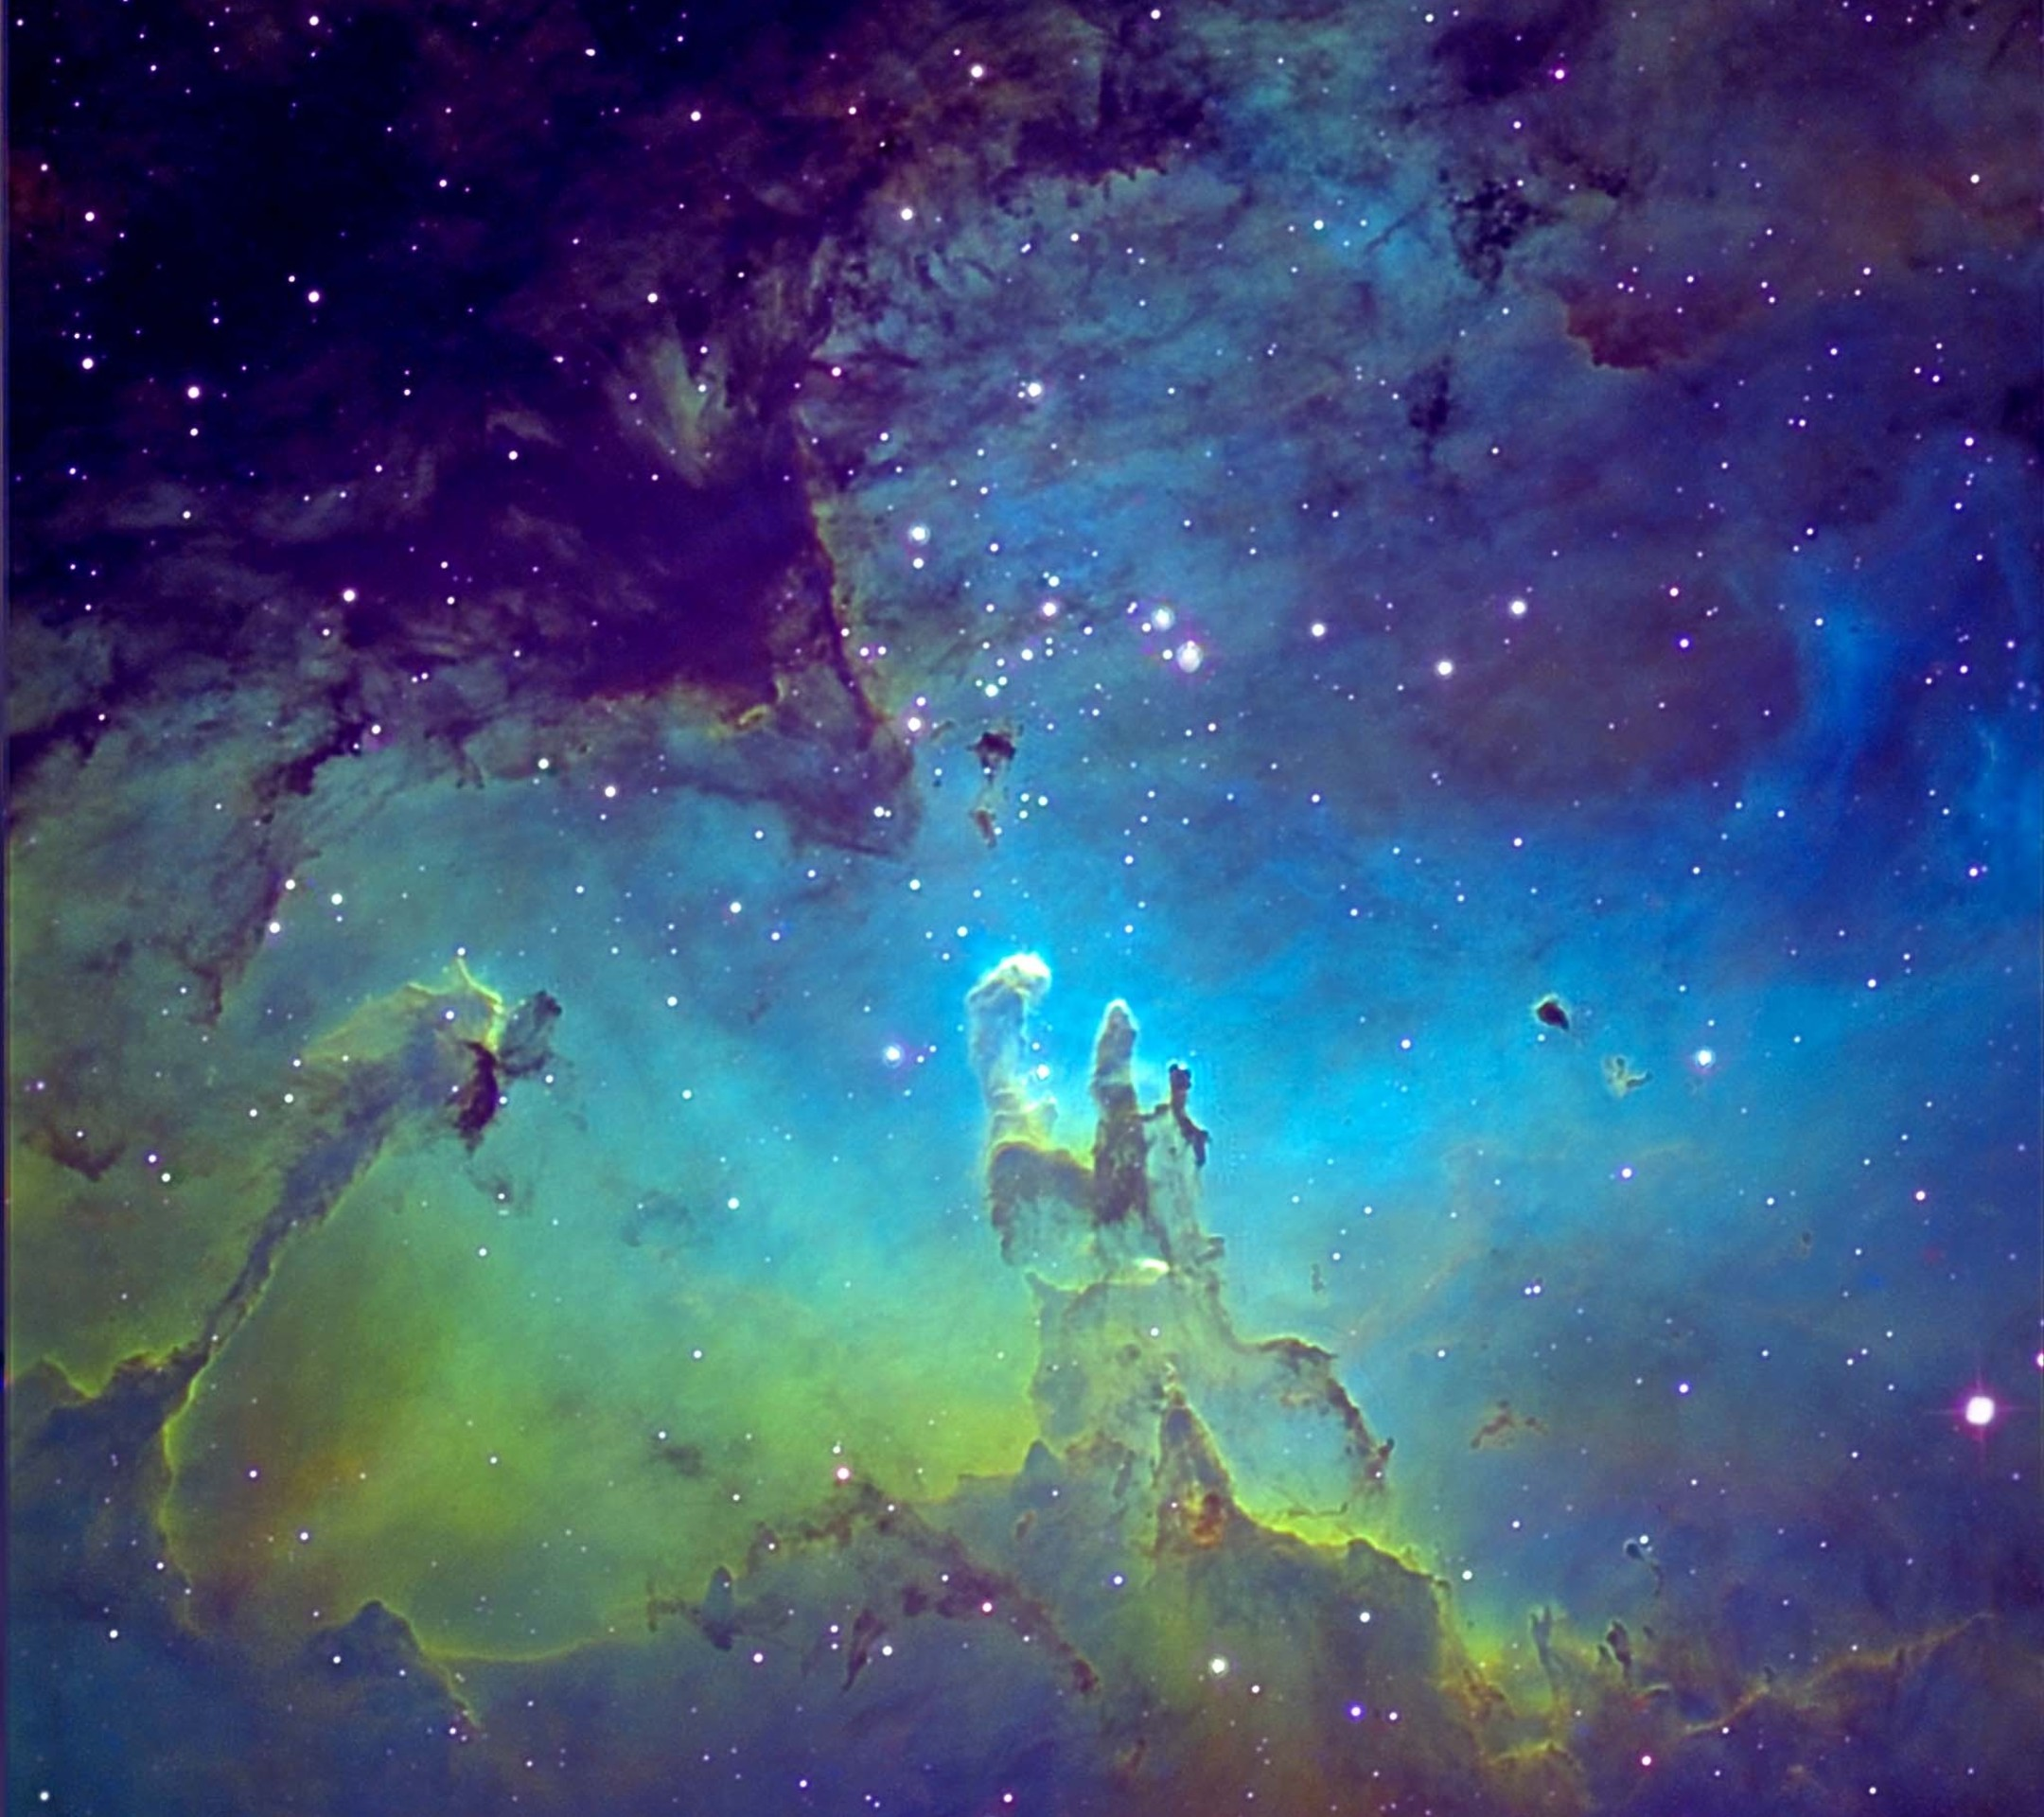 The Galaxy Wallpaper I just pinned!